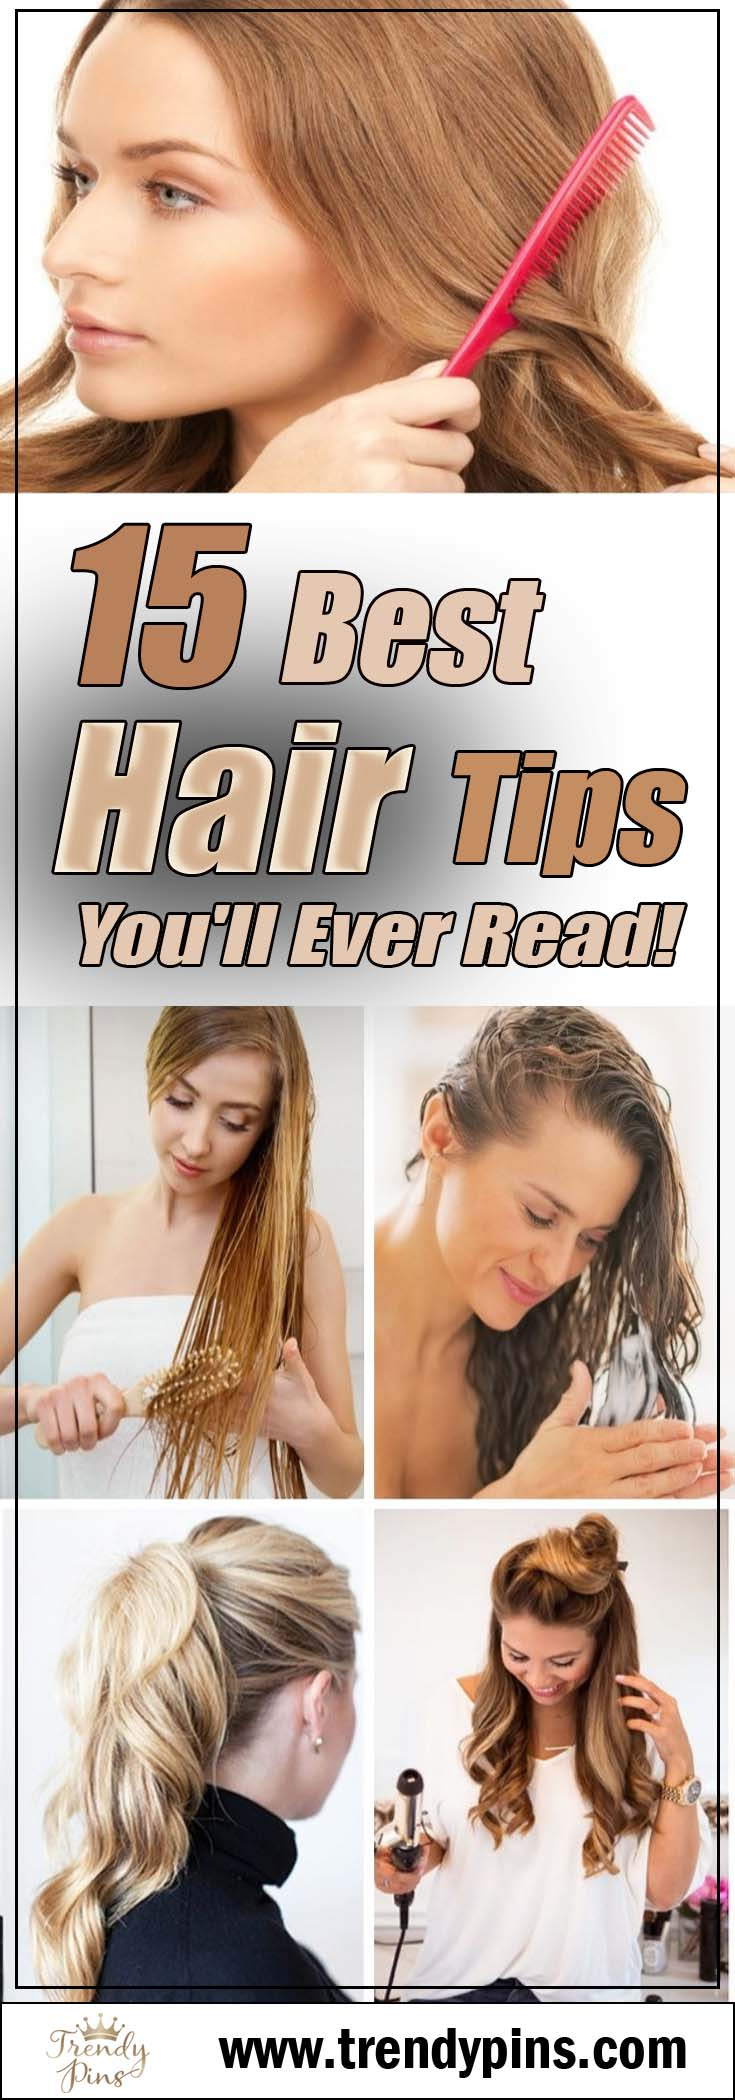 15 Best Hair Tips You'll Ever Read!